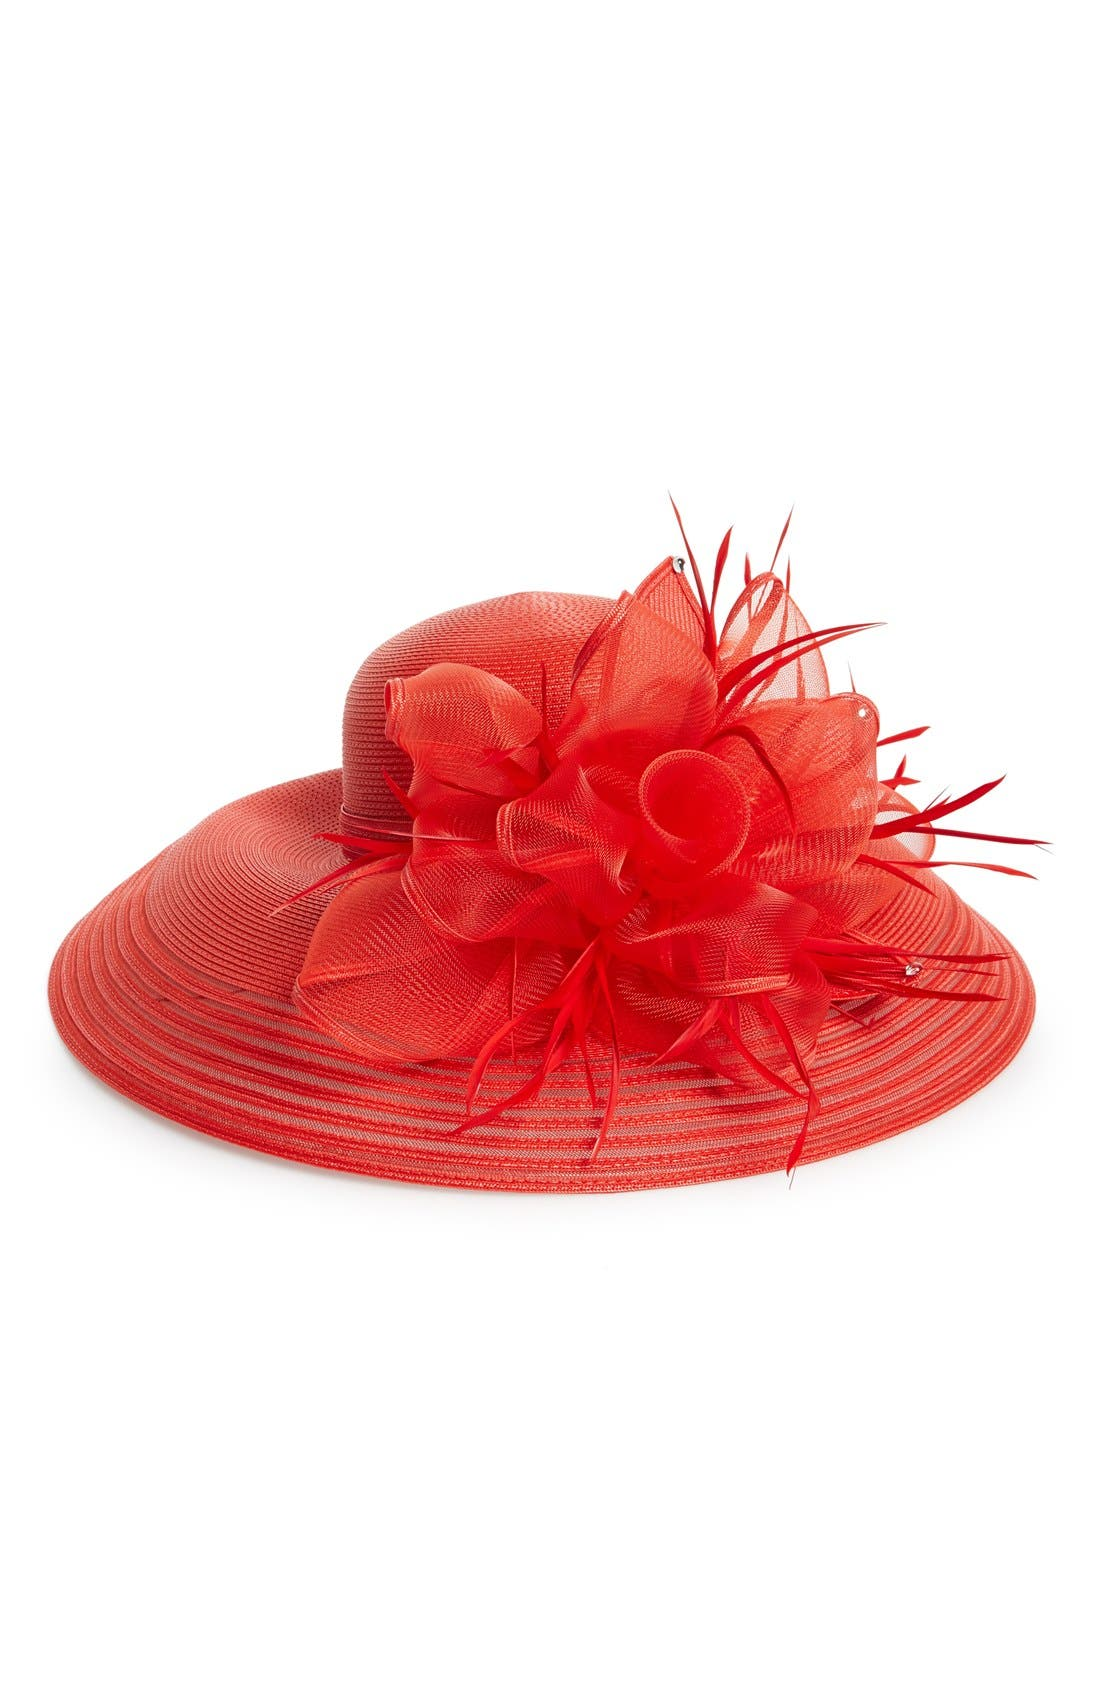 Crystal Embellished Floral Hat,                         Main,                         color, Red